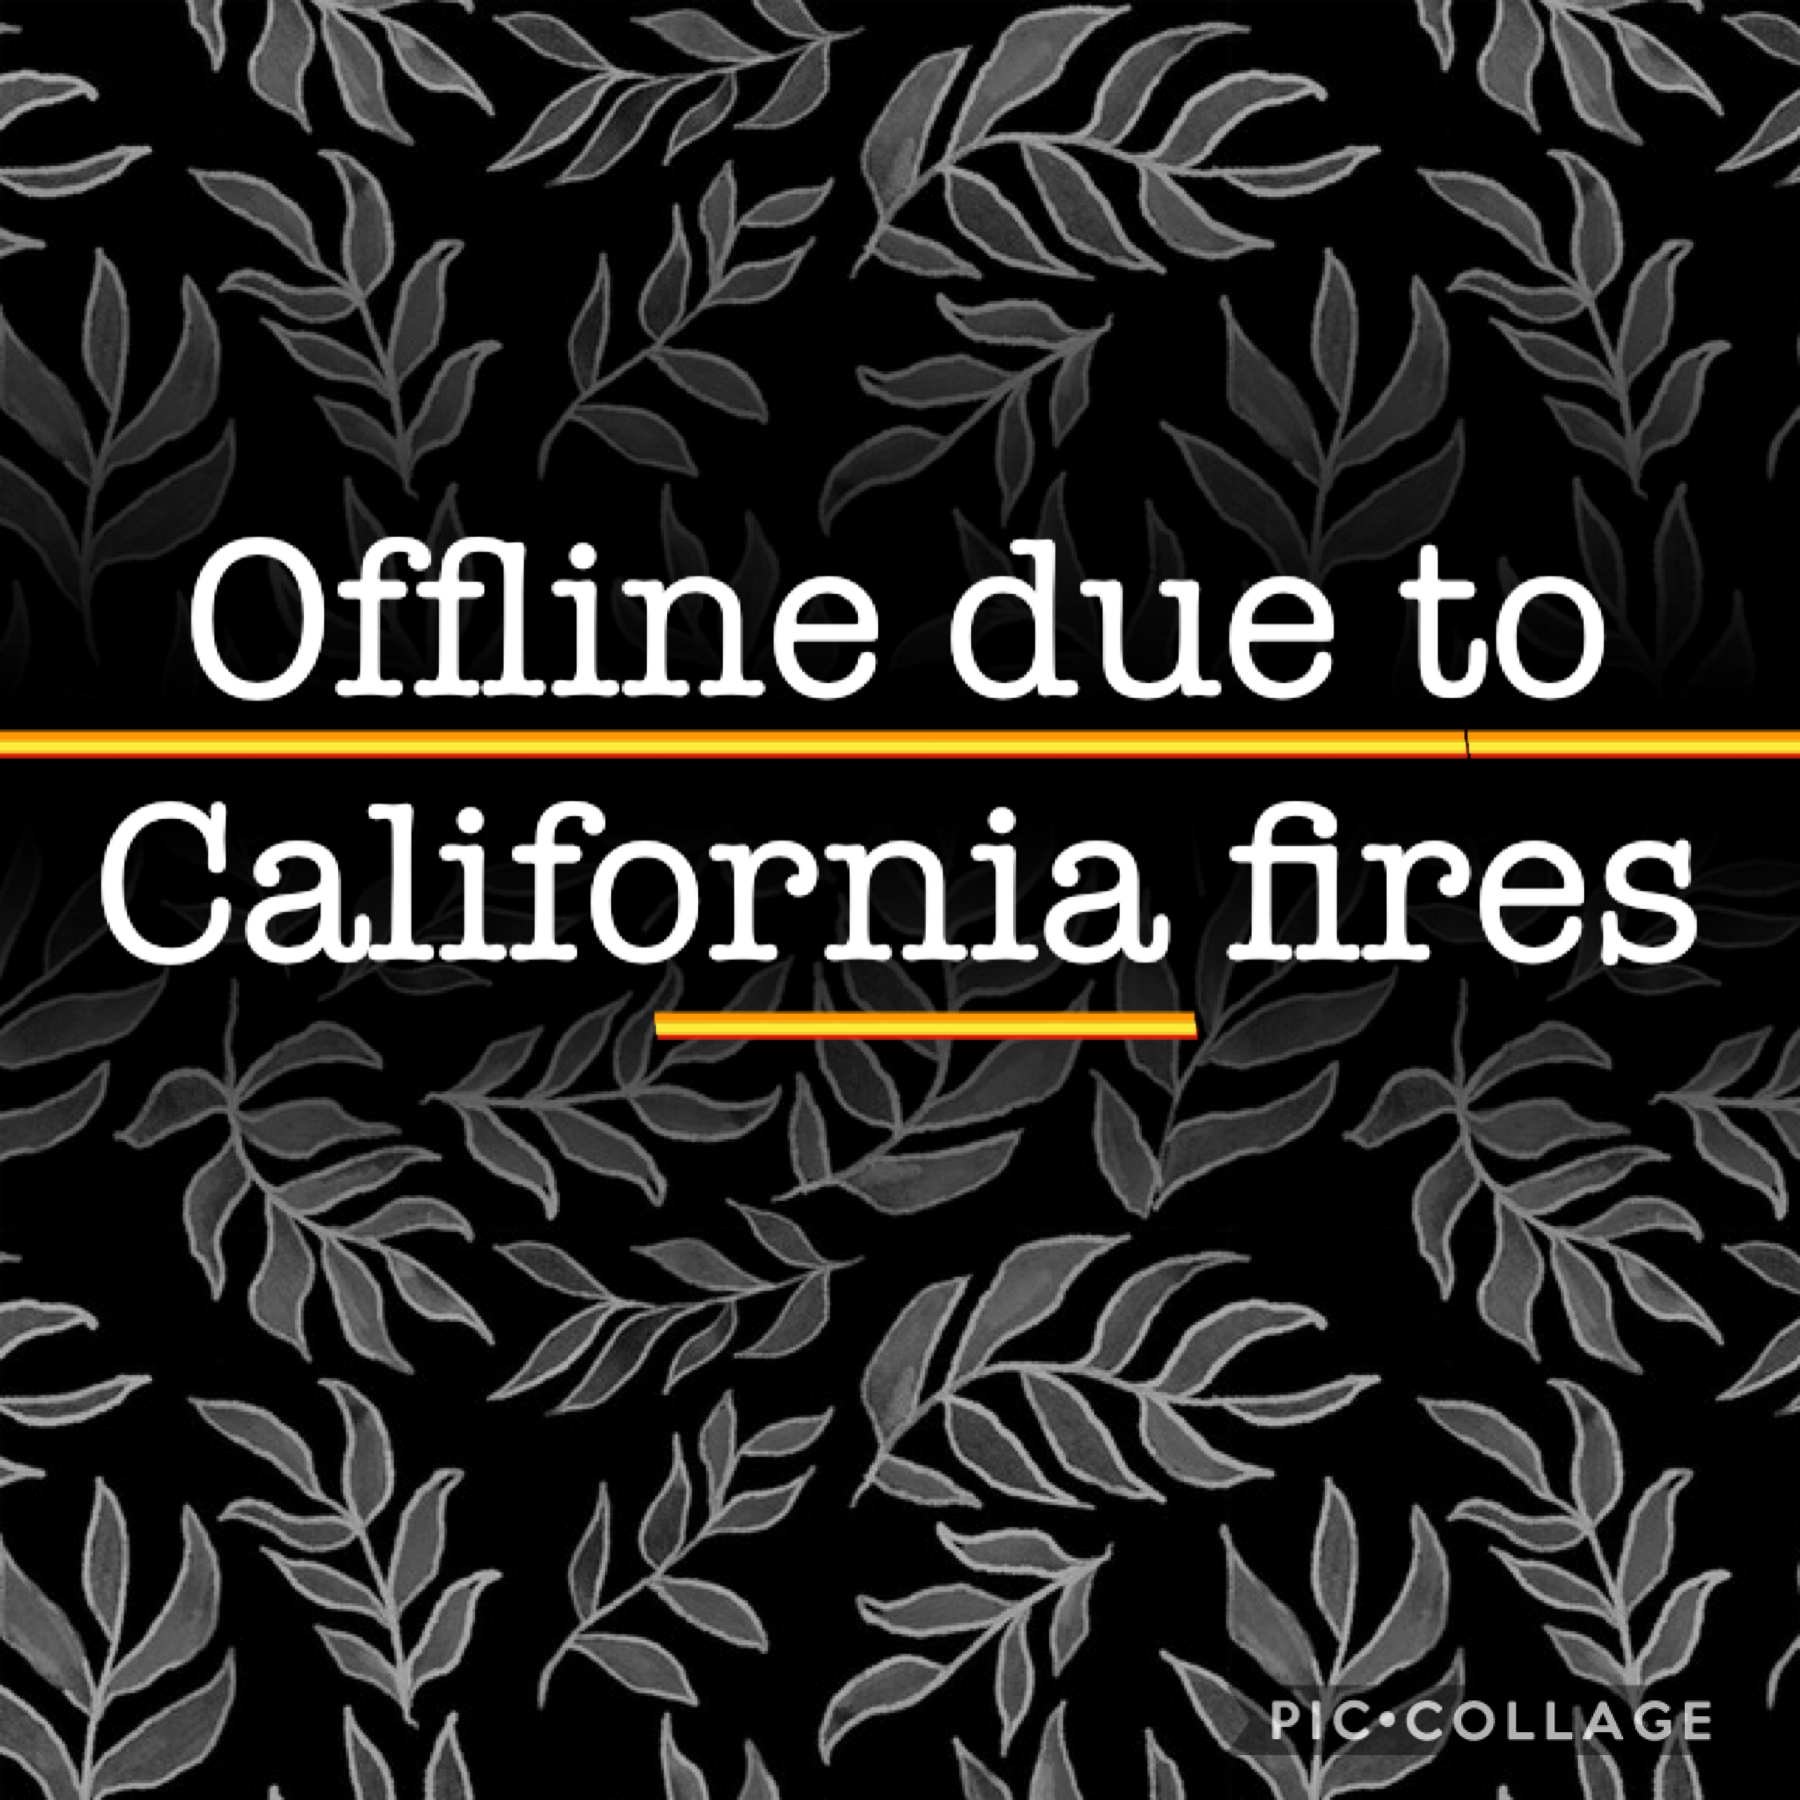 ⚠️Will be posted in comments as well⚠️ Please be patient with me during this time. I most likely will have to evacuate from where I live and it is a stressful time for me and my near by family. I hope to post regularly soon  Remember that I love you, you